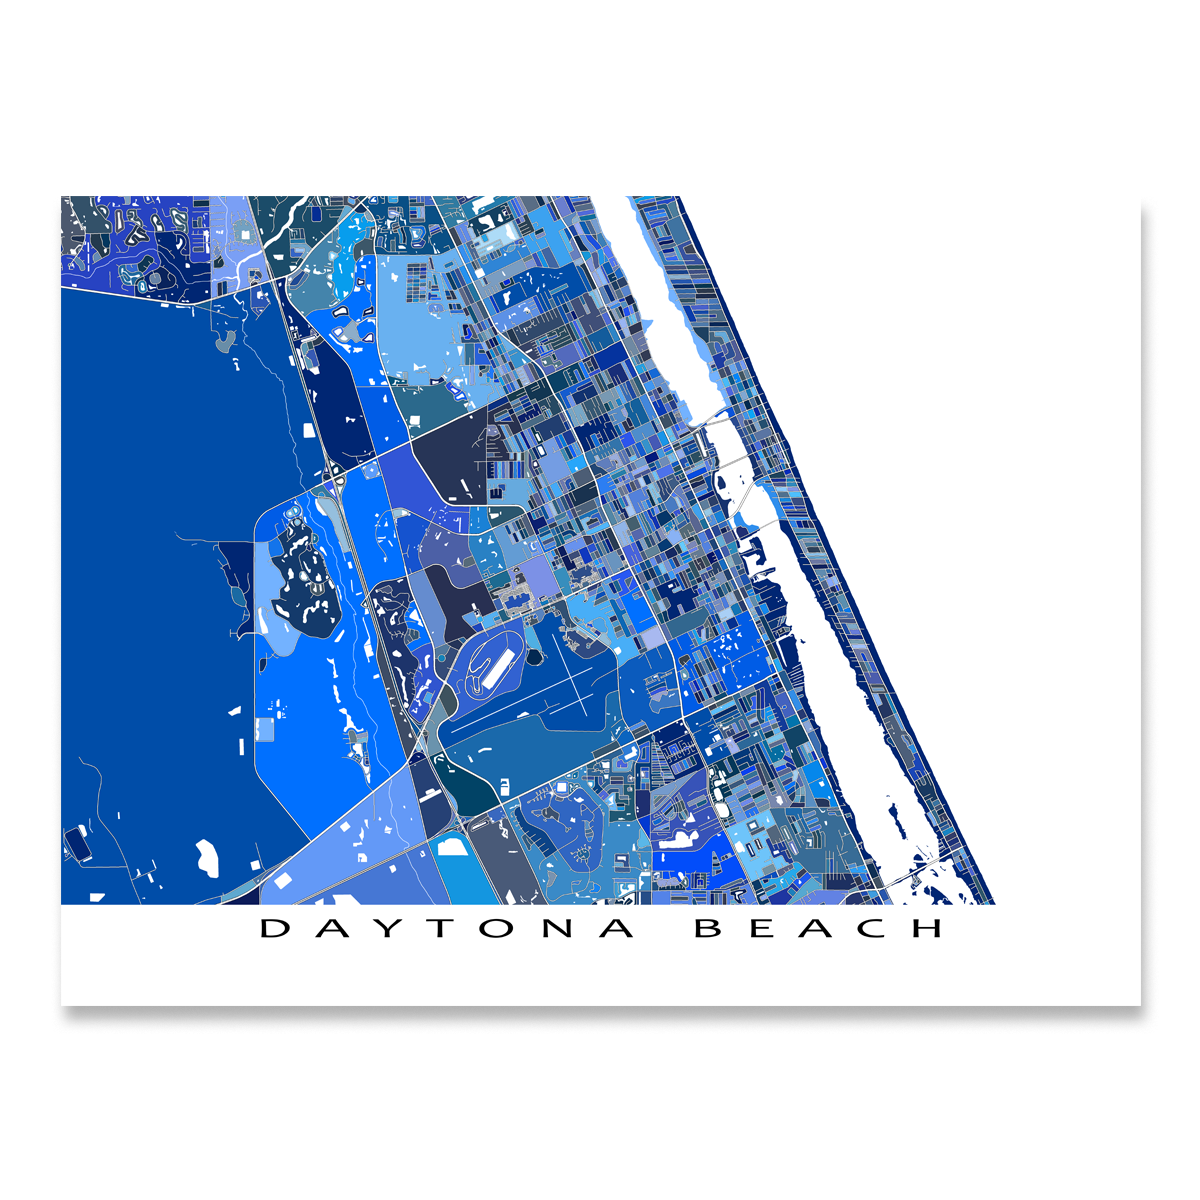 Daytona Beach Map Print, Florida, USA on port orange map, ormond beach map, lake okeechobee on the map, ft. myers map, miami map, new yorker map, west palm map, nashville fairgrounds map, dunedin map, manchester united kingdom map, pompano beach map, deltona map, bradenton map, brandon map, dayton map, ft. lauderdale map, florida map, the keys map, giving directions map, st. augustine map,